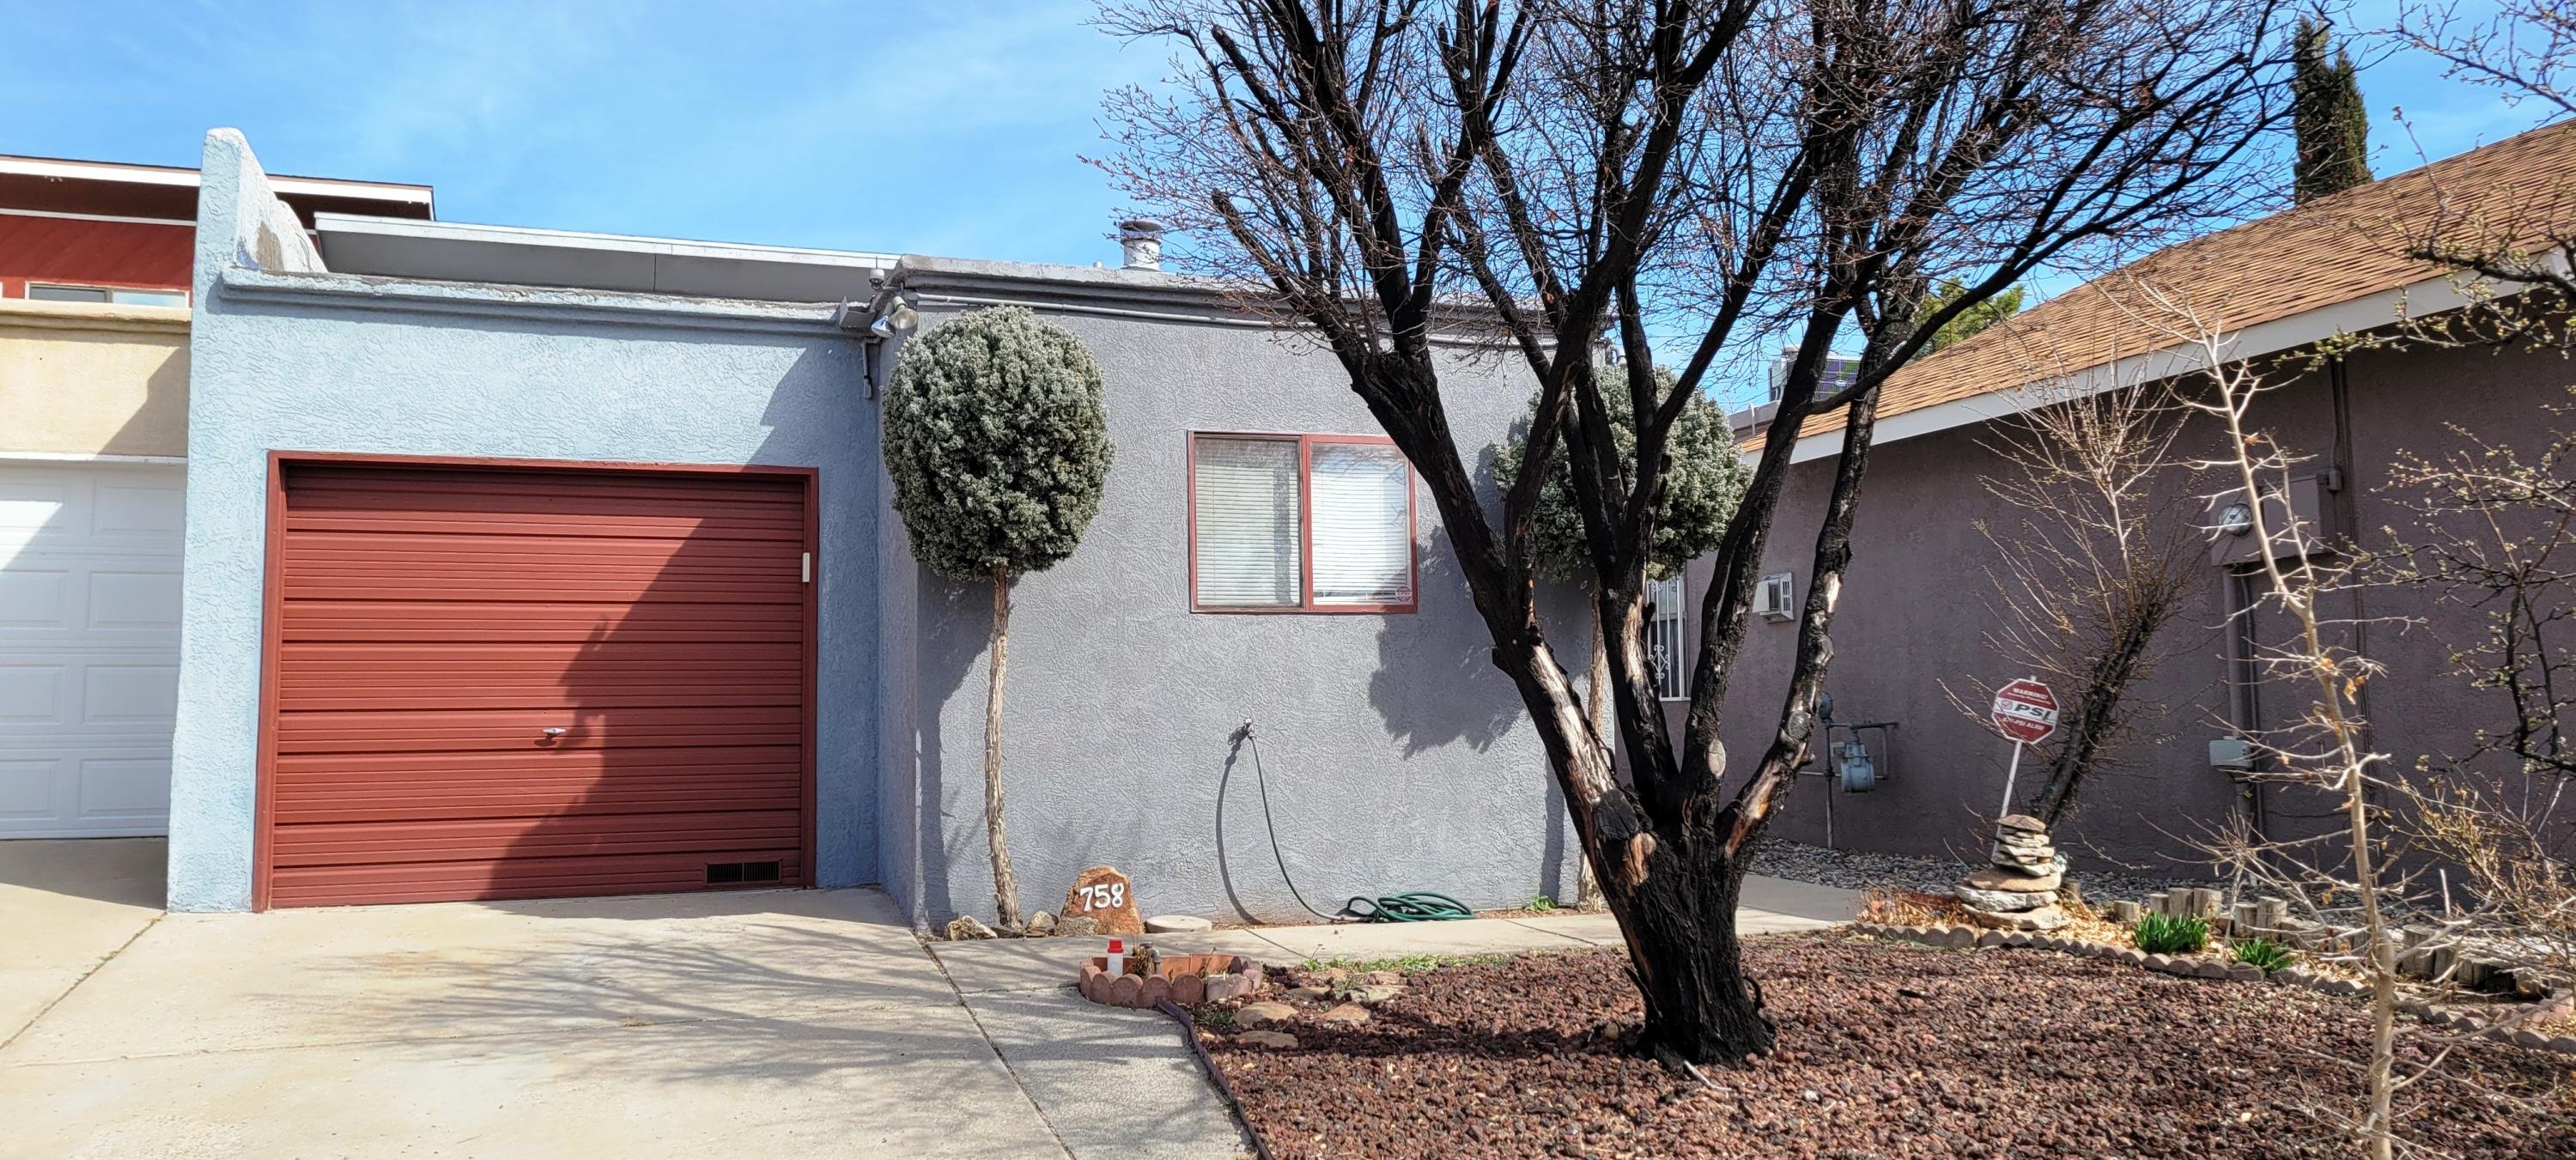 Charming Townhouse, ready for you to move in.  New Roof and other improvements 3/2021.